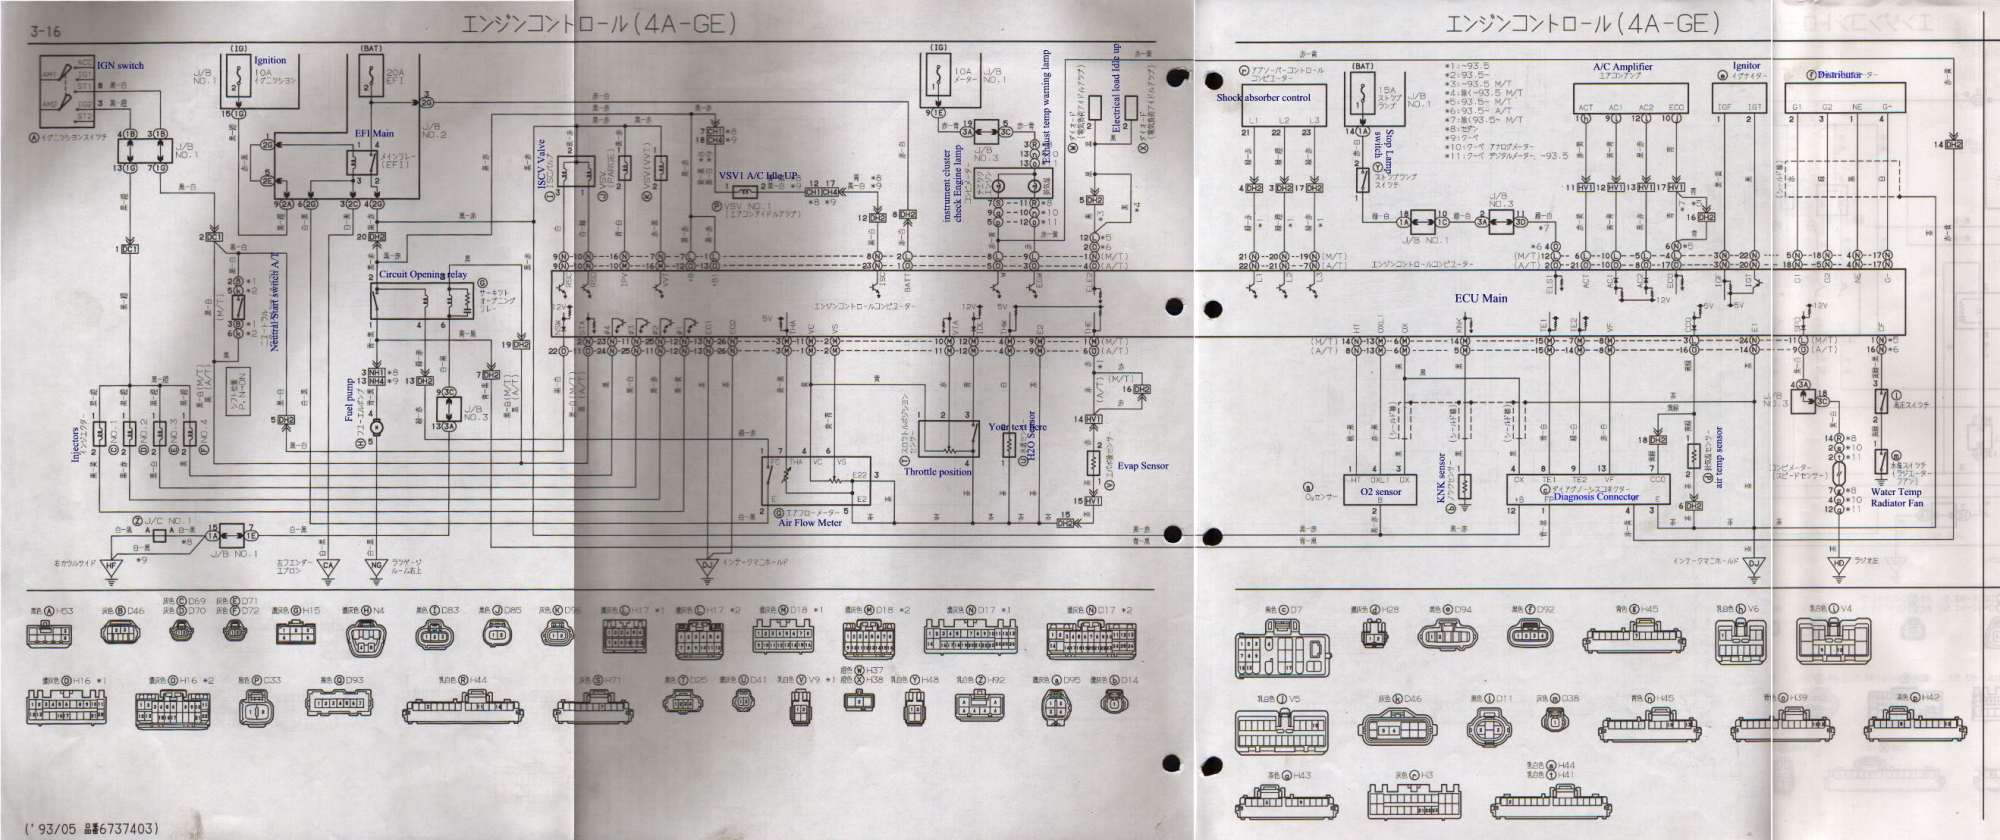 hight resolution of suzuki bolan wiring diagram pdf simple wiring post rh 26 asiagourmet igb de suzuki electrical schematics